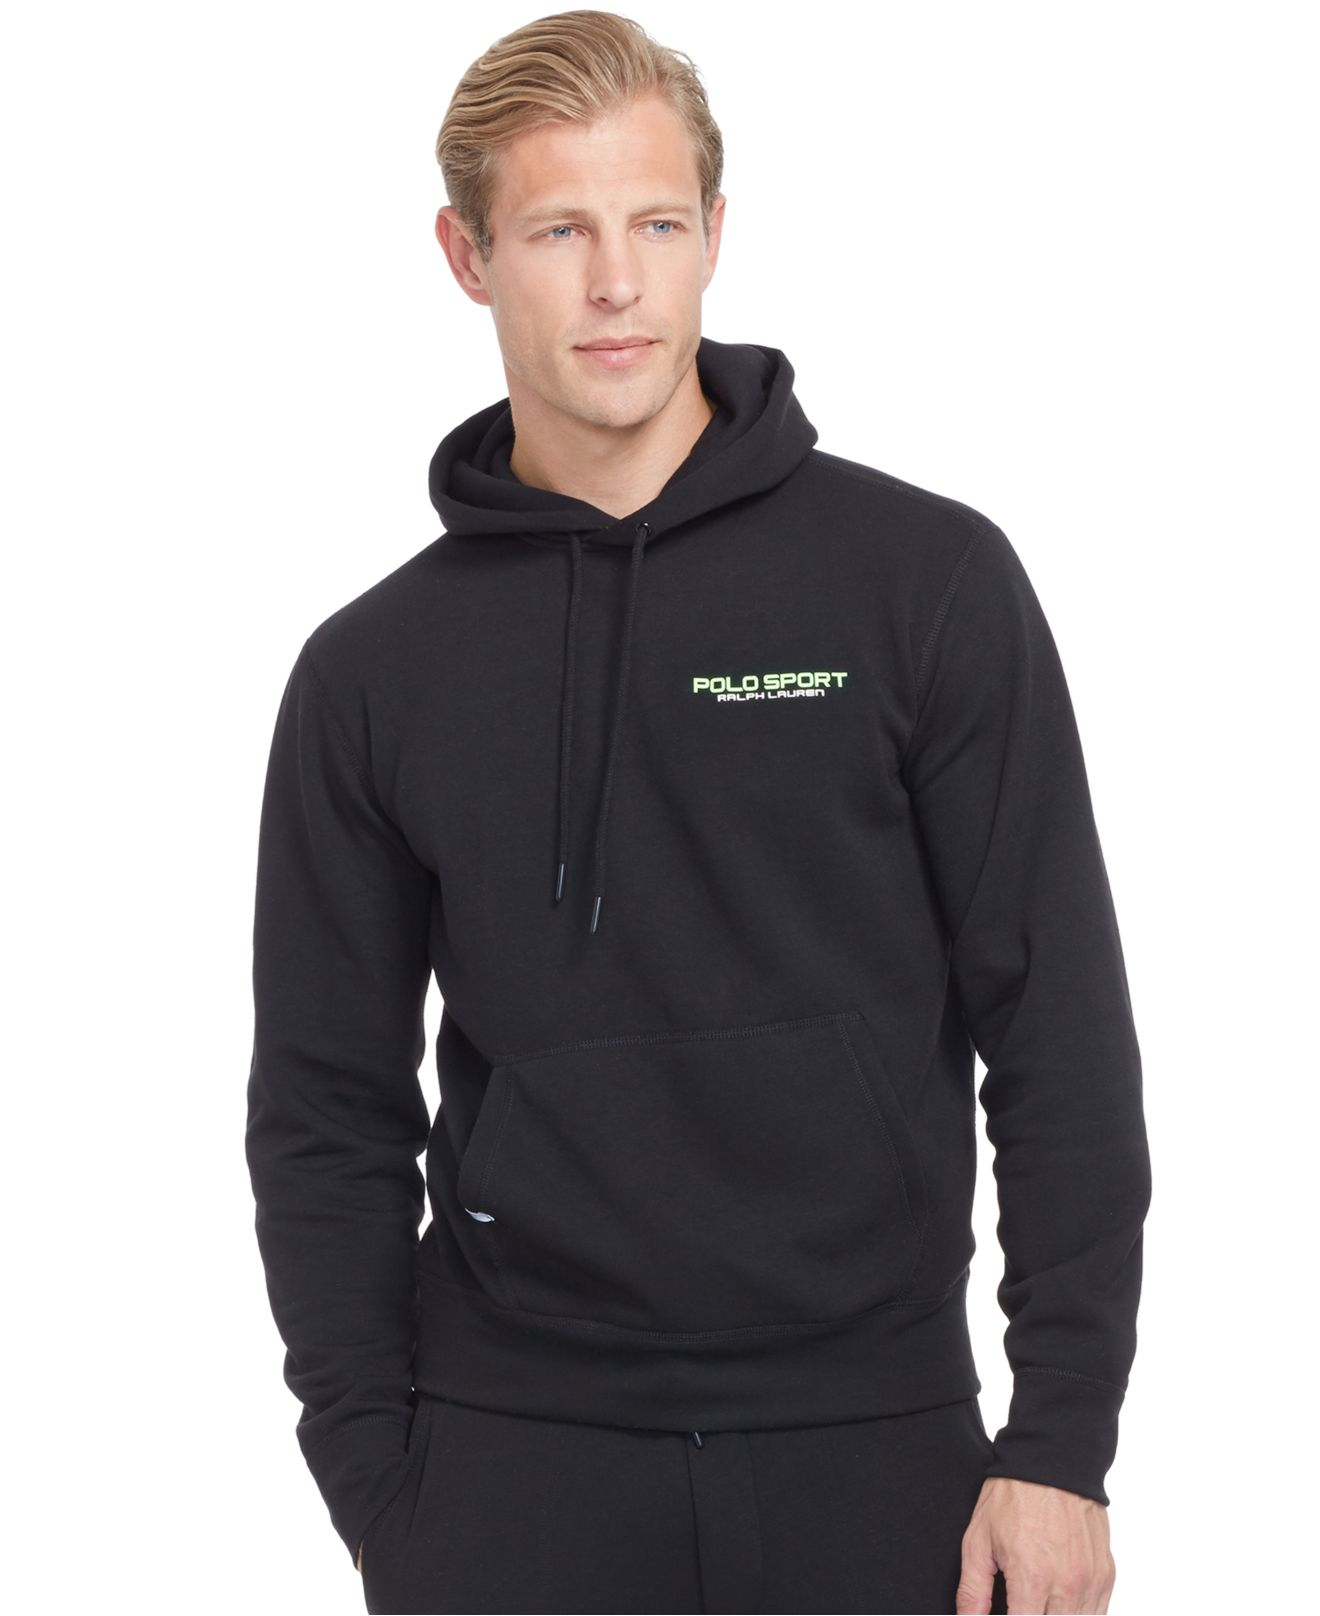 polo ralph lauren polo sport fleece pullover hoodie in. Black Bedroom Furniture Sets. Home Design Ideas